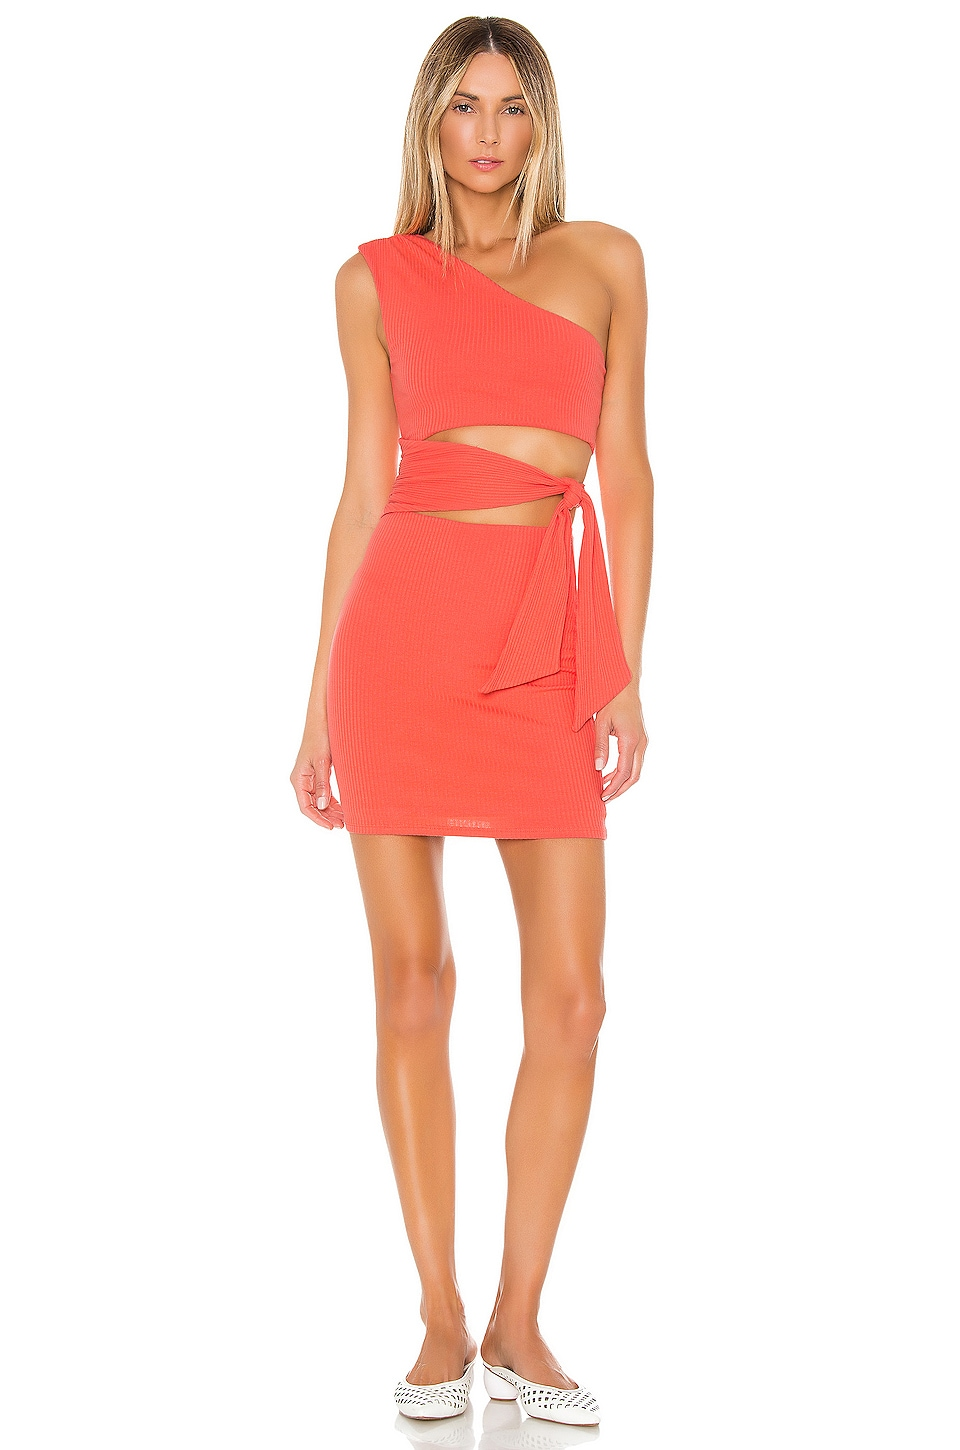 Lovers + Friends Alexander Dress in Coral